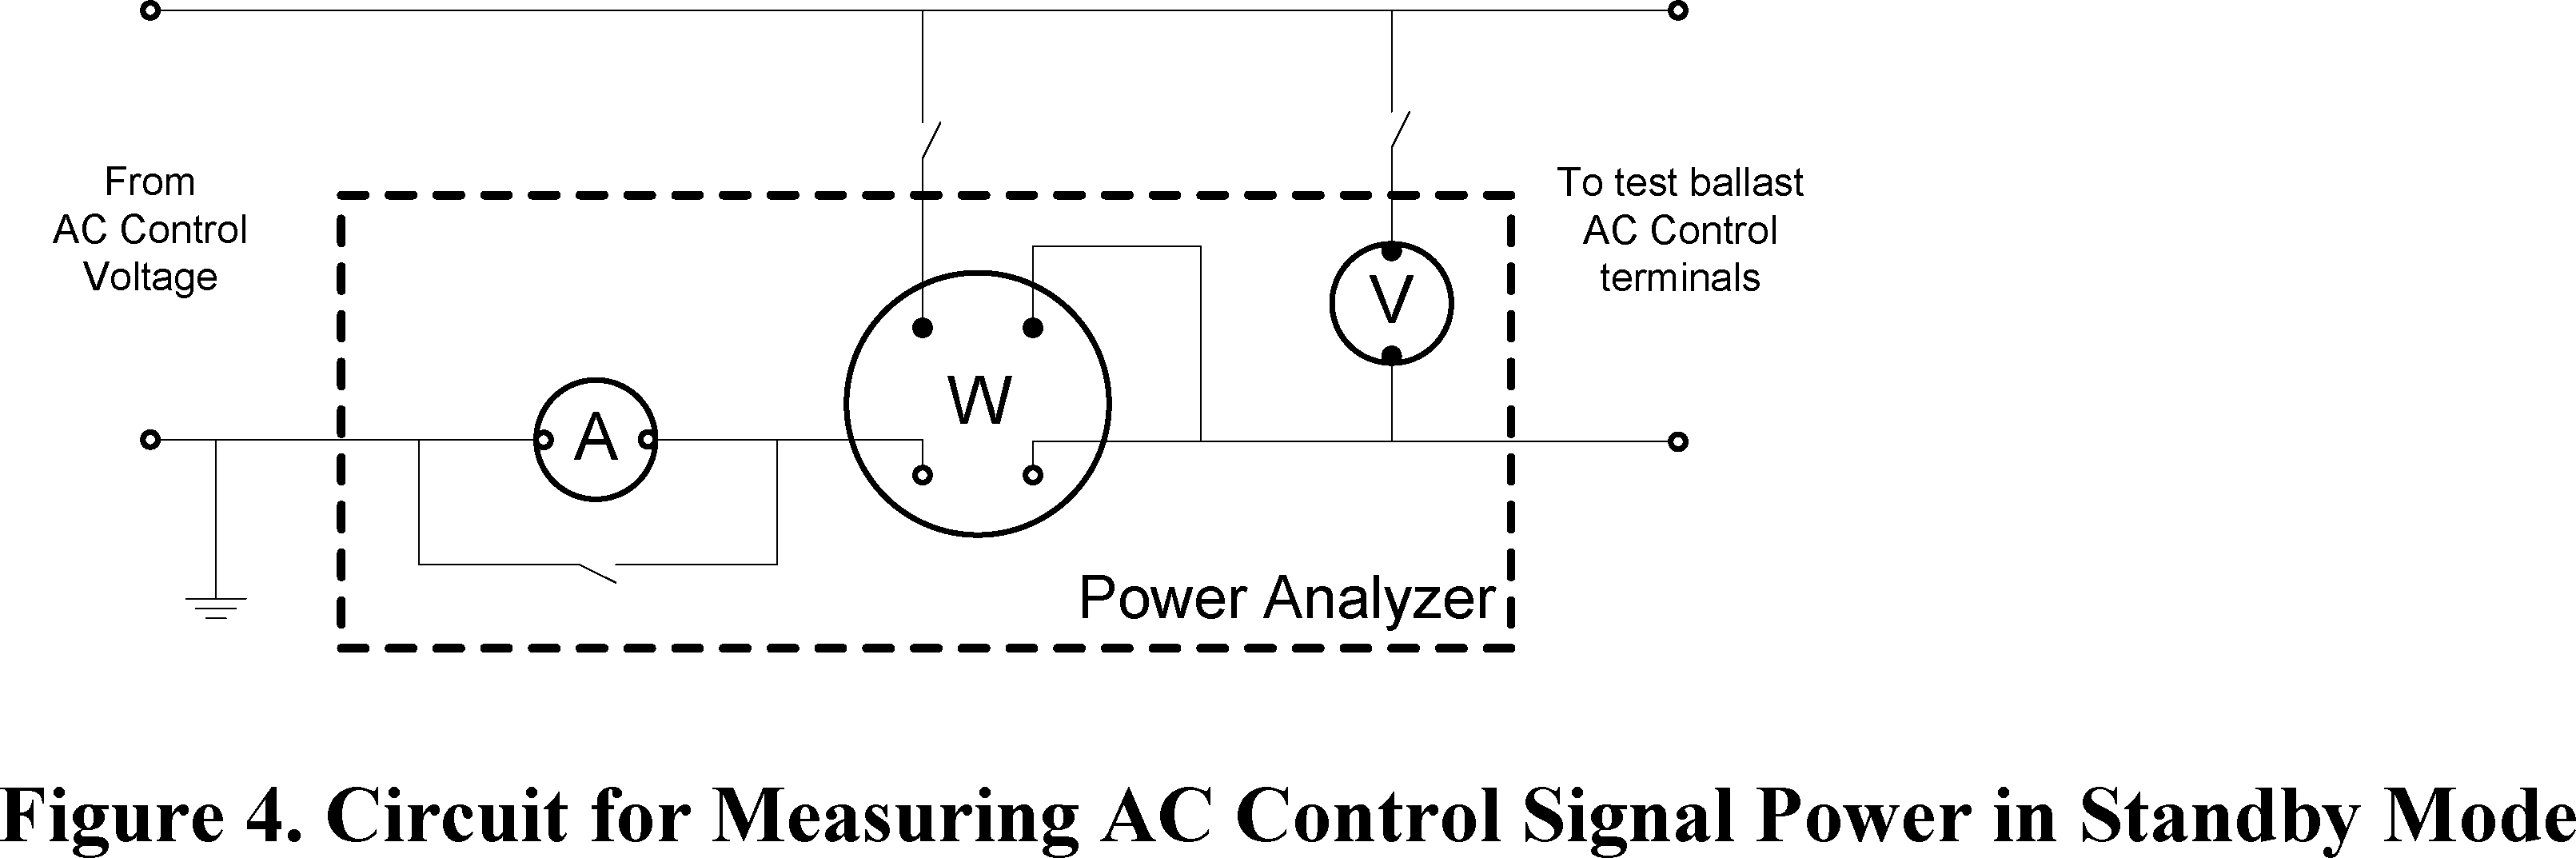 Federal Register Energy Conservation Program Clarification For Ac Voltmeter Circuit Moreover Ammeter Wiring Diagram On Measure The Dc Control Signal Voltage Using A V And Current An Connected To Ballast In Accordance With